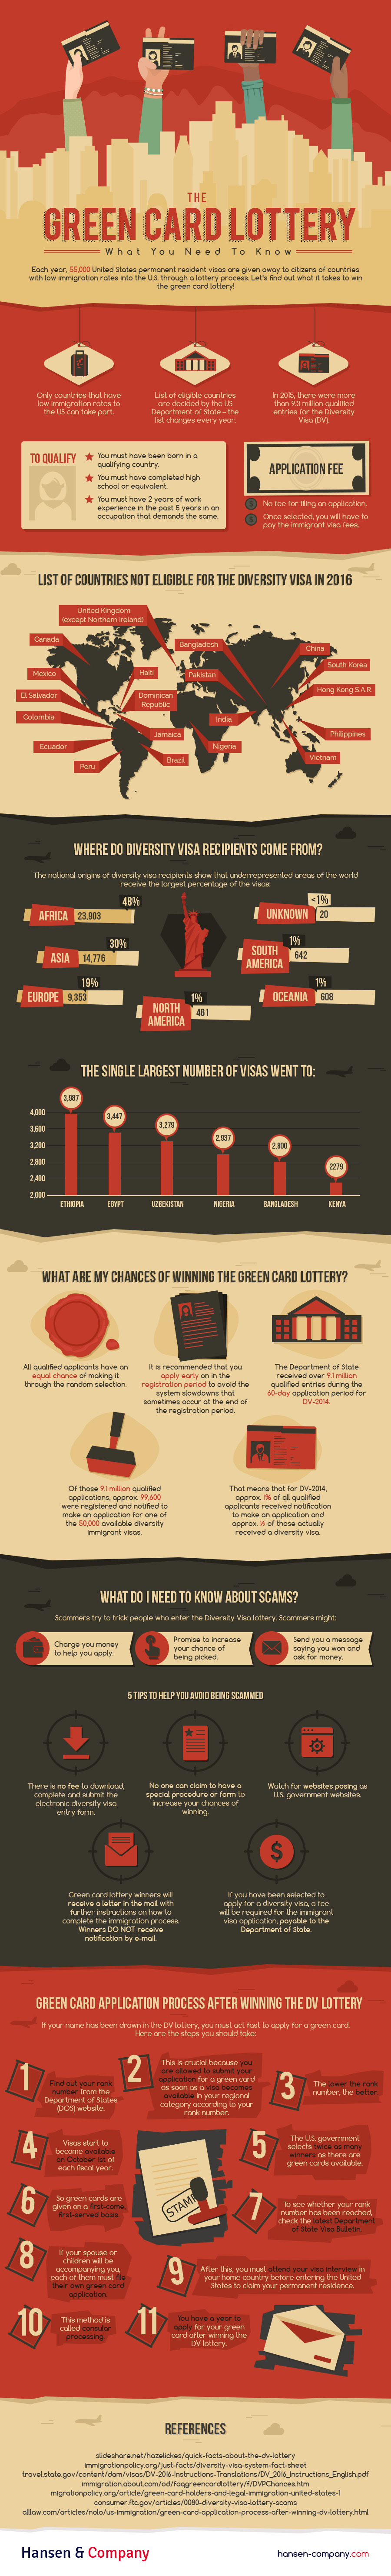 The Green Card Lottery